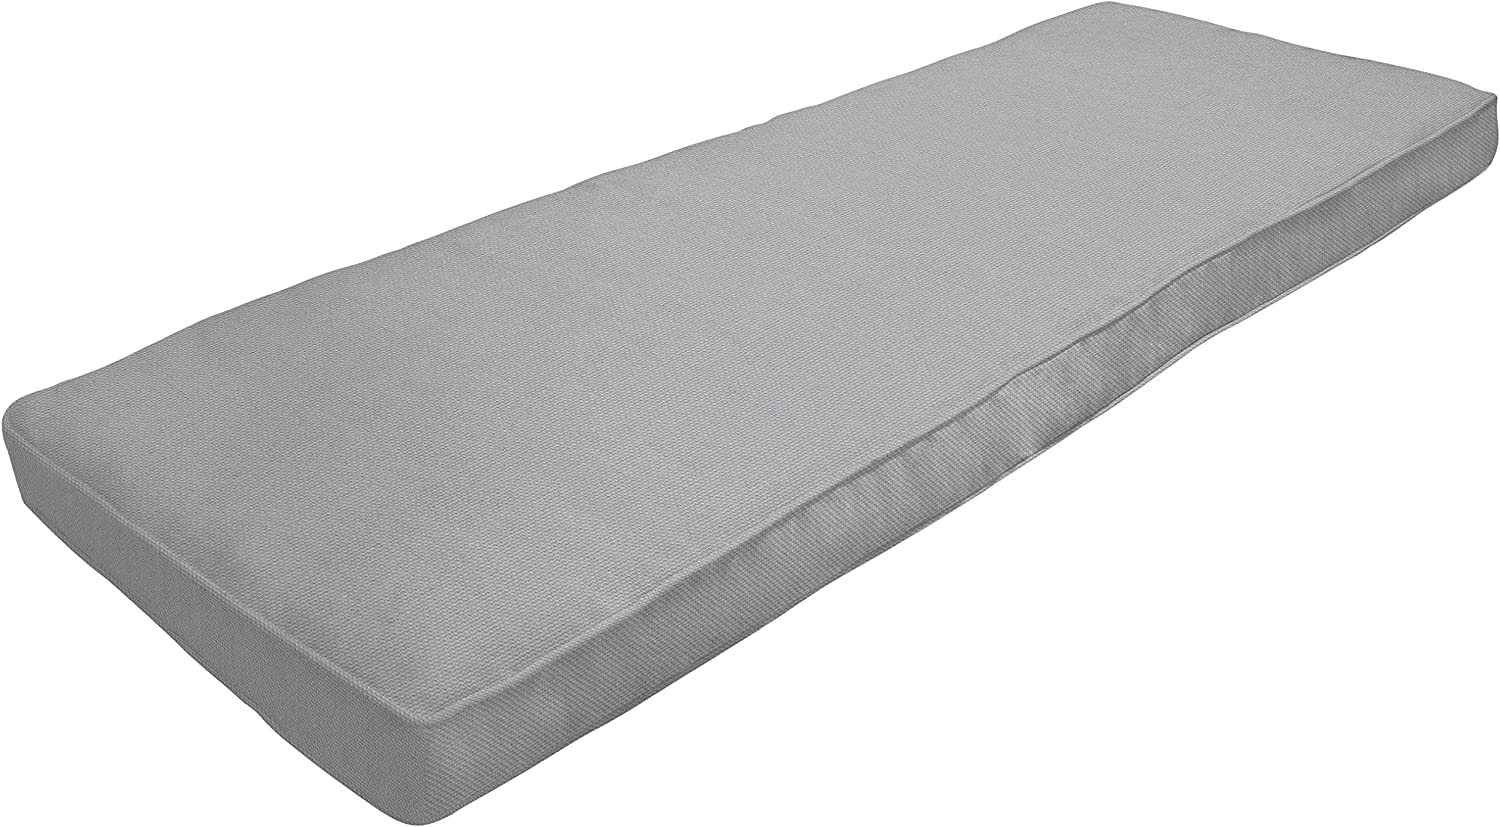 Amazon Custom Furnishings x Easy Way Products 20751 Custom Zipped Double Piped Bench Cushion, 48 x 15 x 3.5 , Pebbletex Grey 94